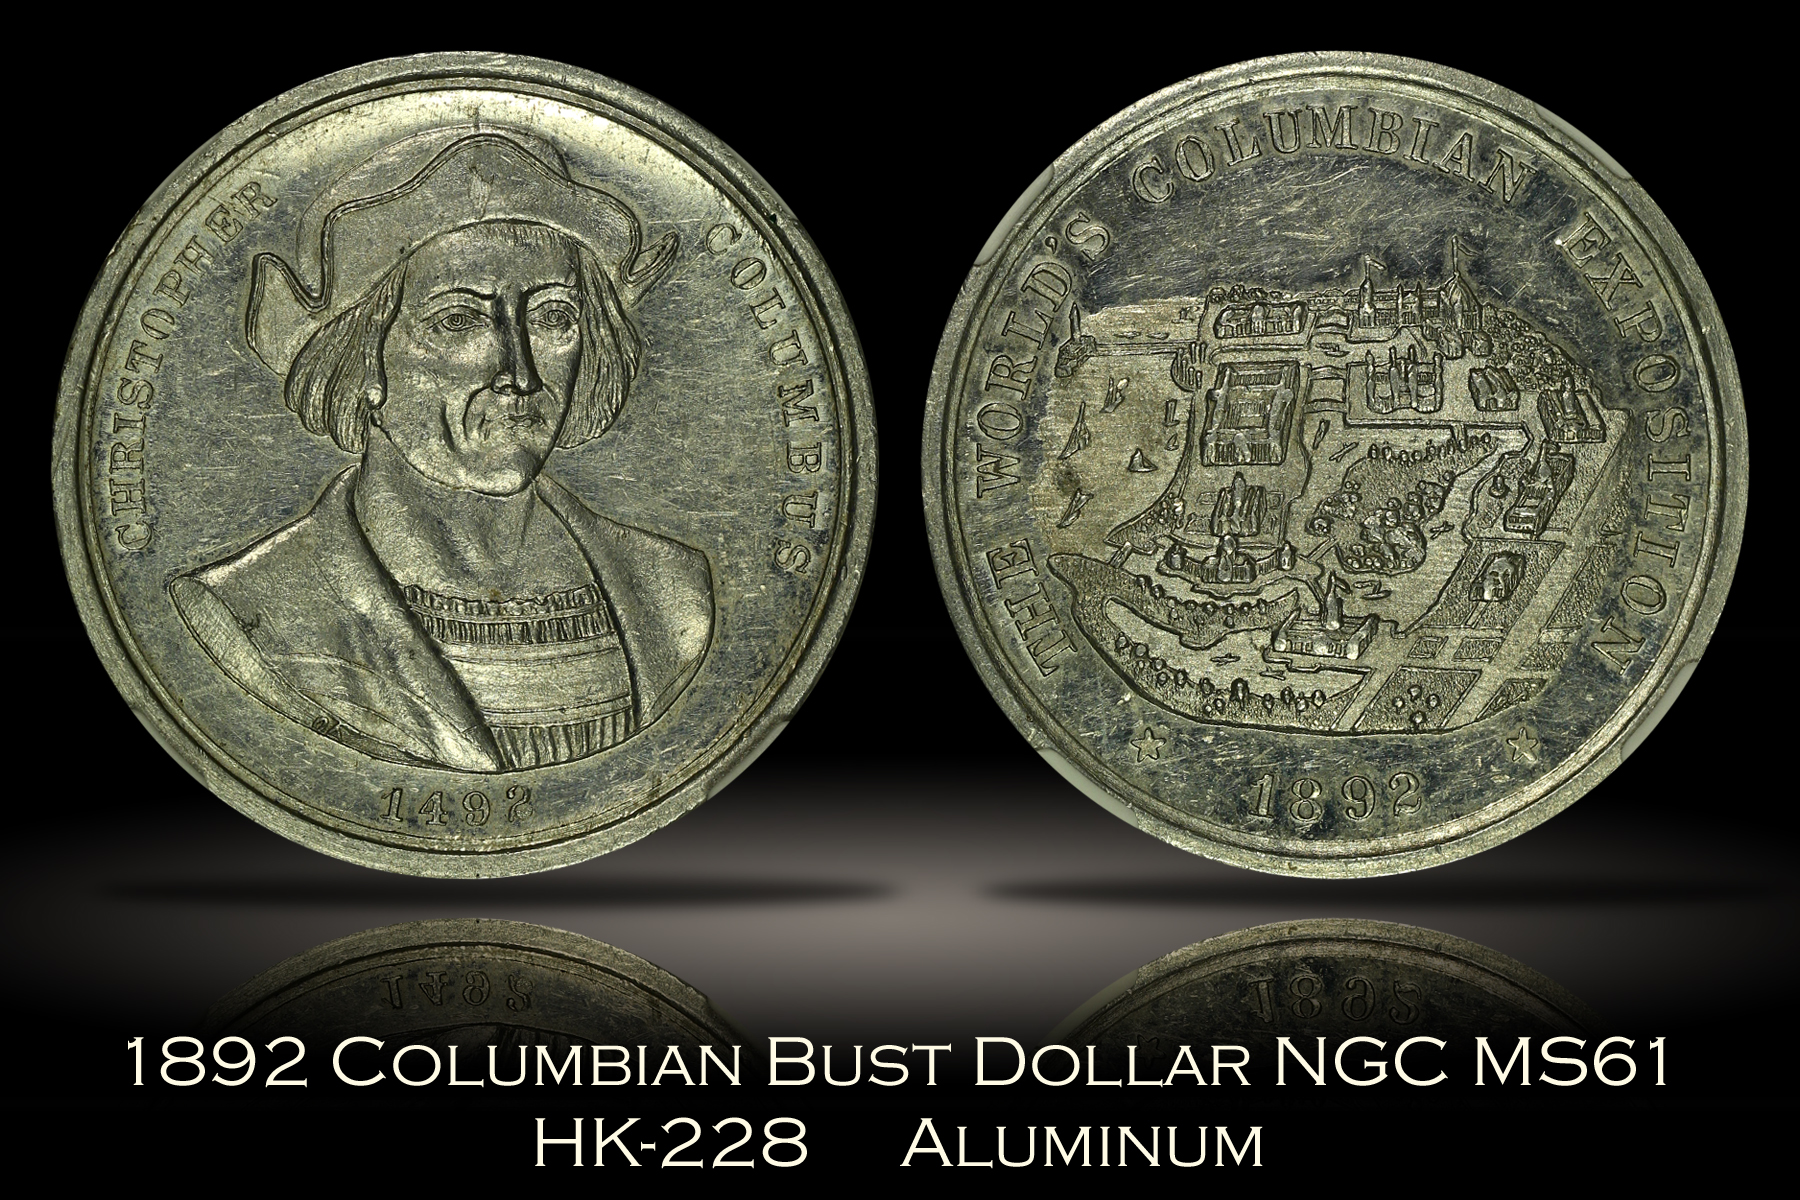 1892 Columbian Expo Bust Dollar HK-228 NGC MS61